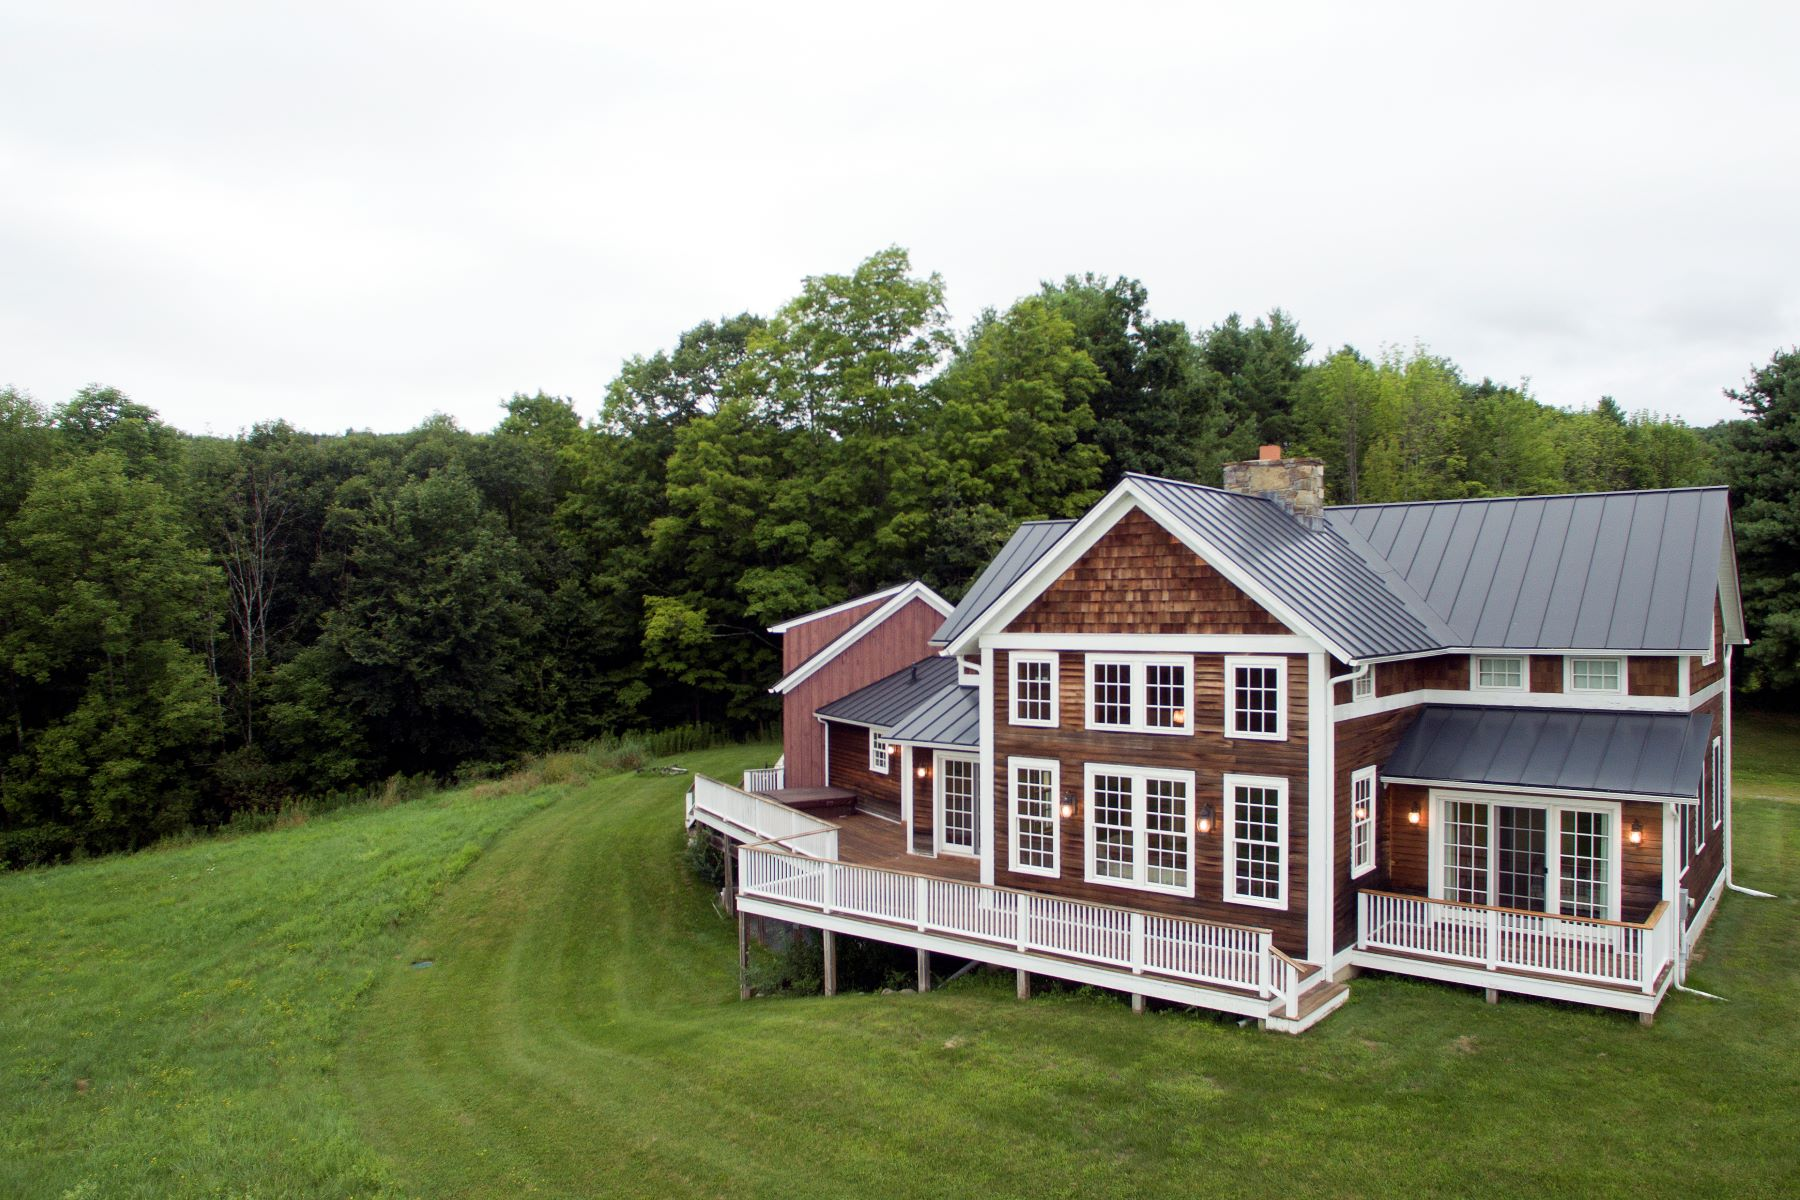 Single Family Home for Sale at Custom Built with Exceptional Views 661 Old Lake Rd Poultney, Vermont 05764 United States